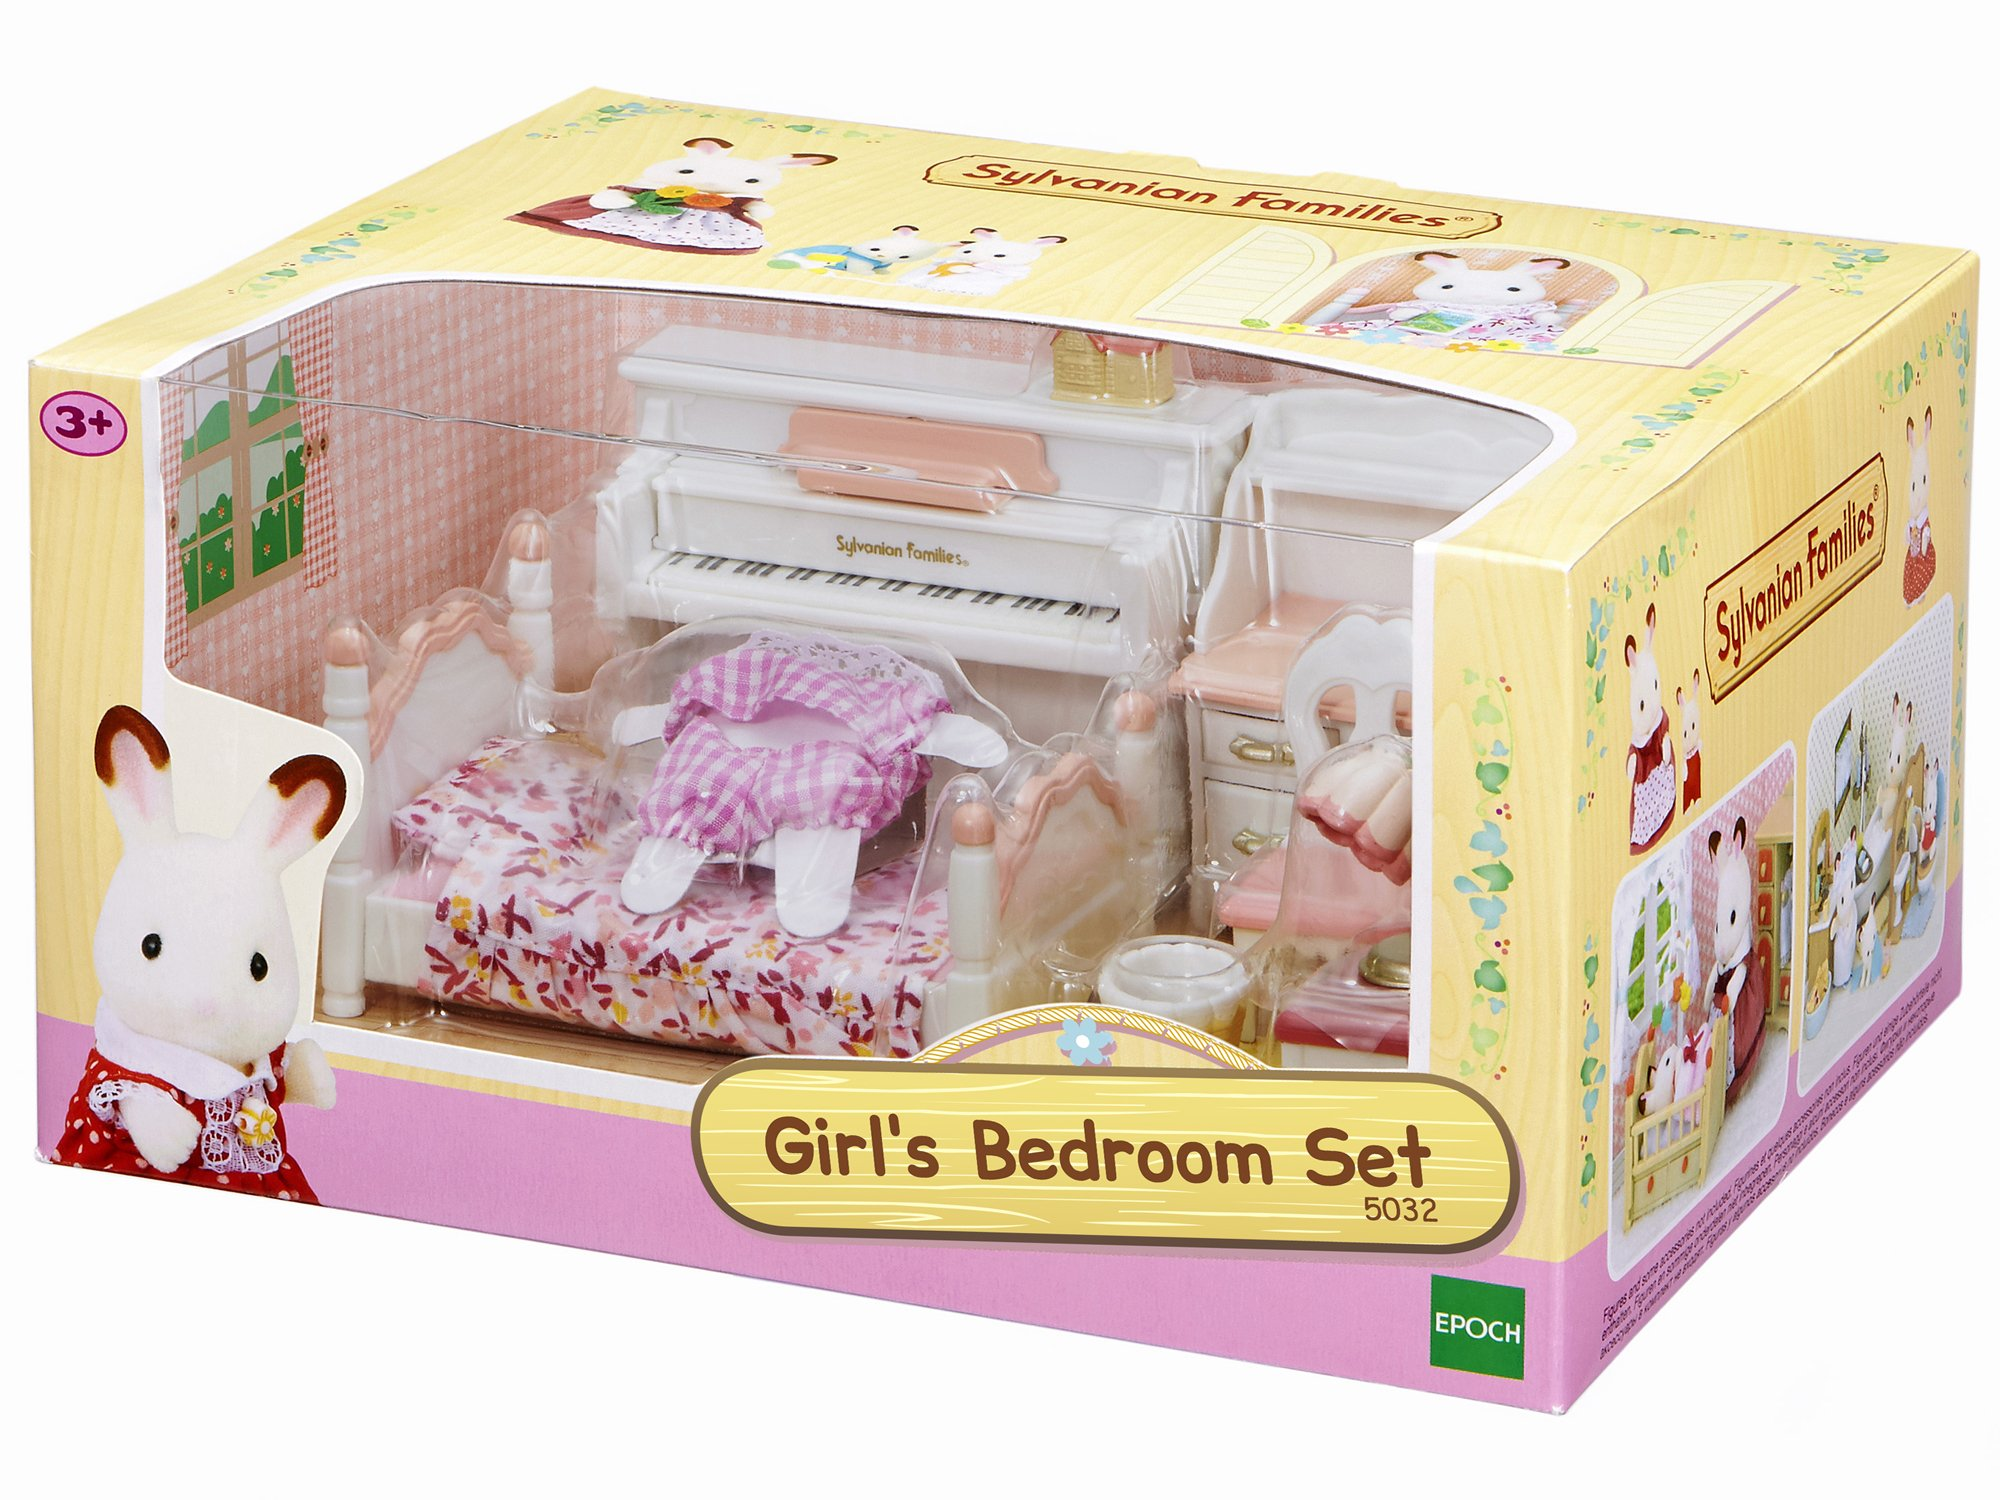 EPOCH GirlS Room Set Sylvanian Families Mini muñecas y Accesorios, Multicolor (2953) ,